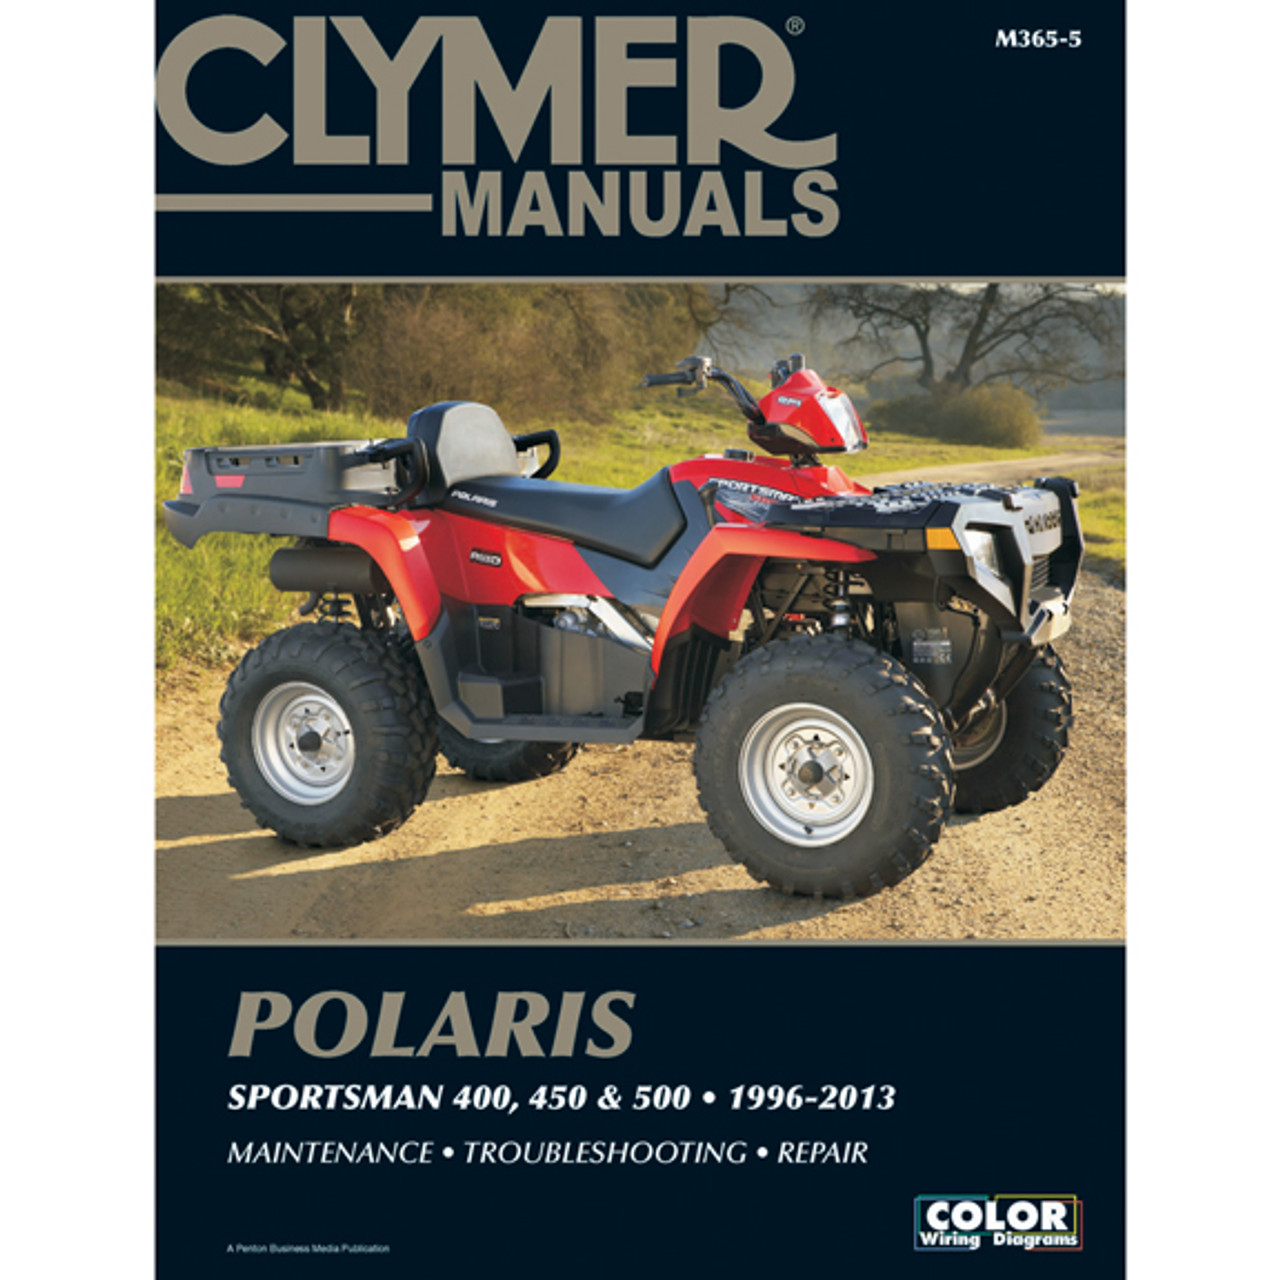 2002 polaris scrambler 400 service manual one word quickstart rh kelvinatawura co uk 2003 polaris sportsman 90 repair manual 2007 Polaris Sportsman 90 Manual